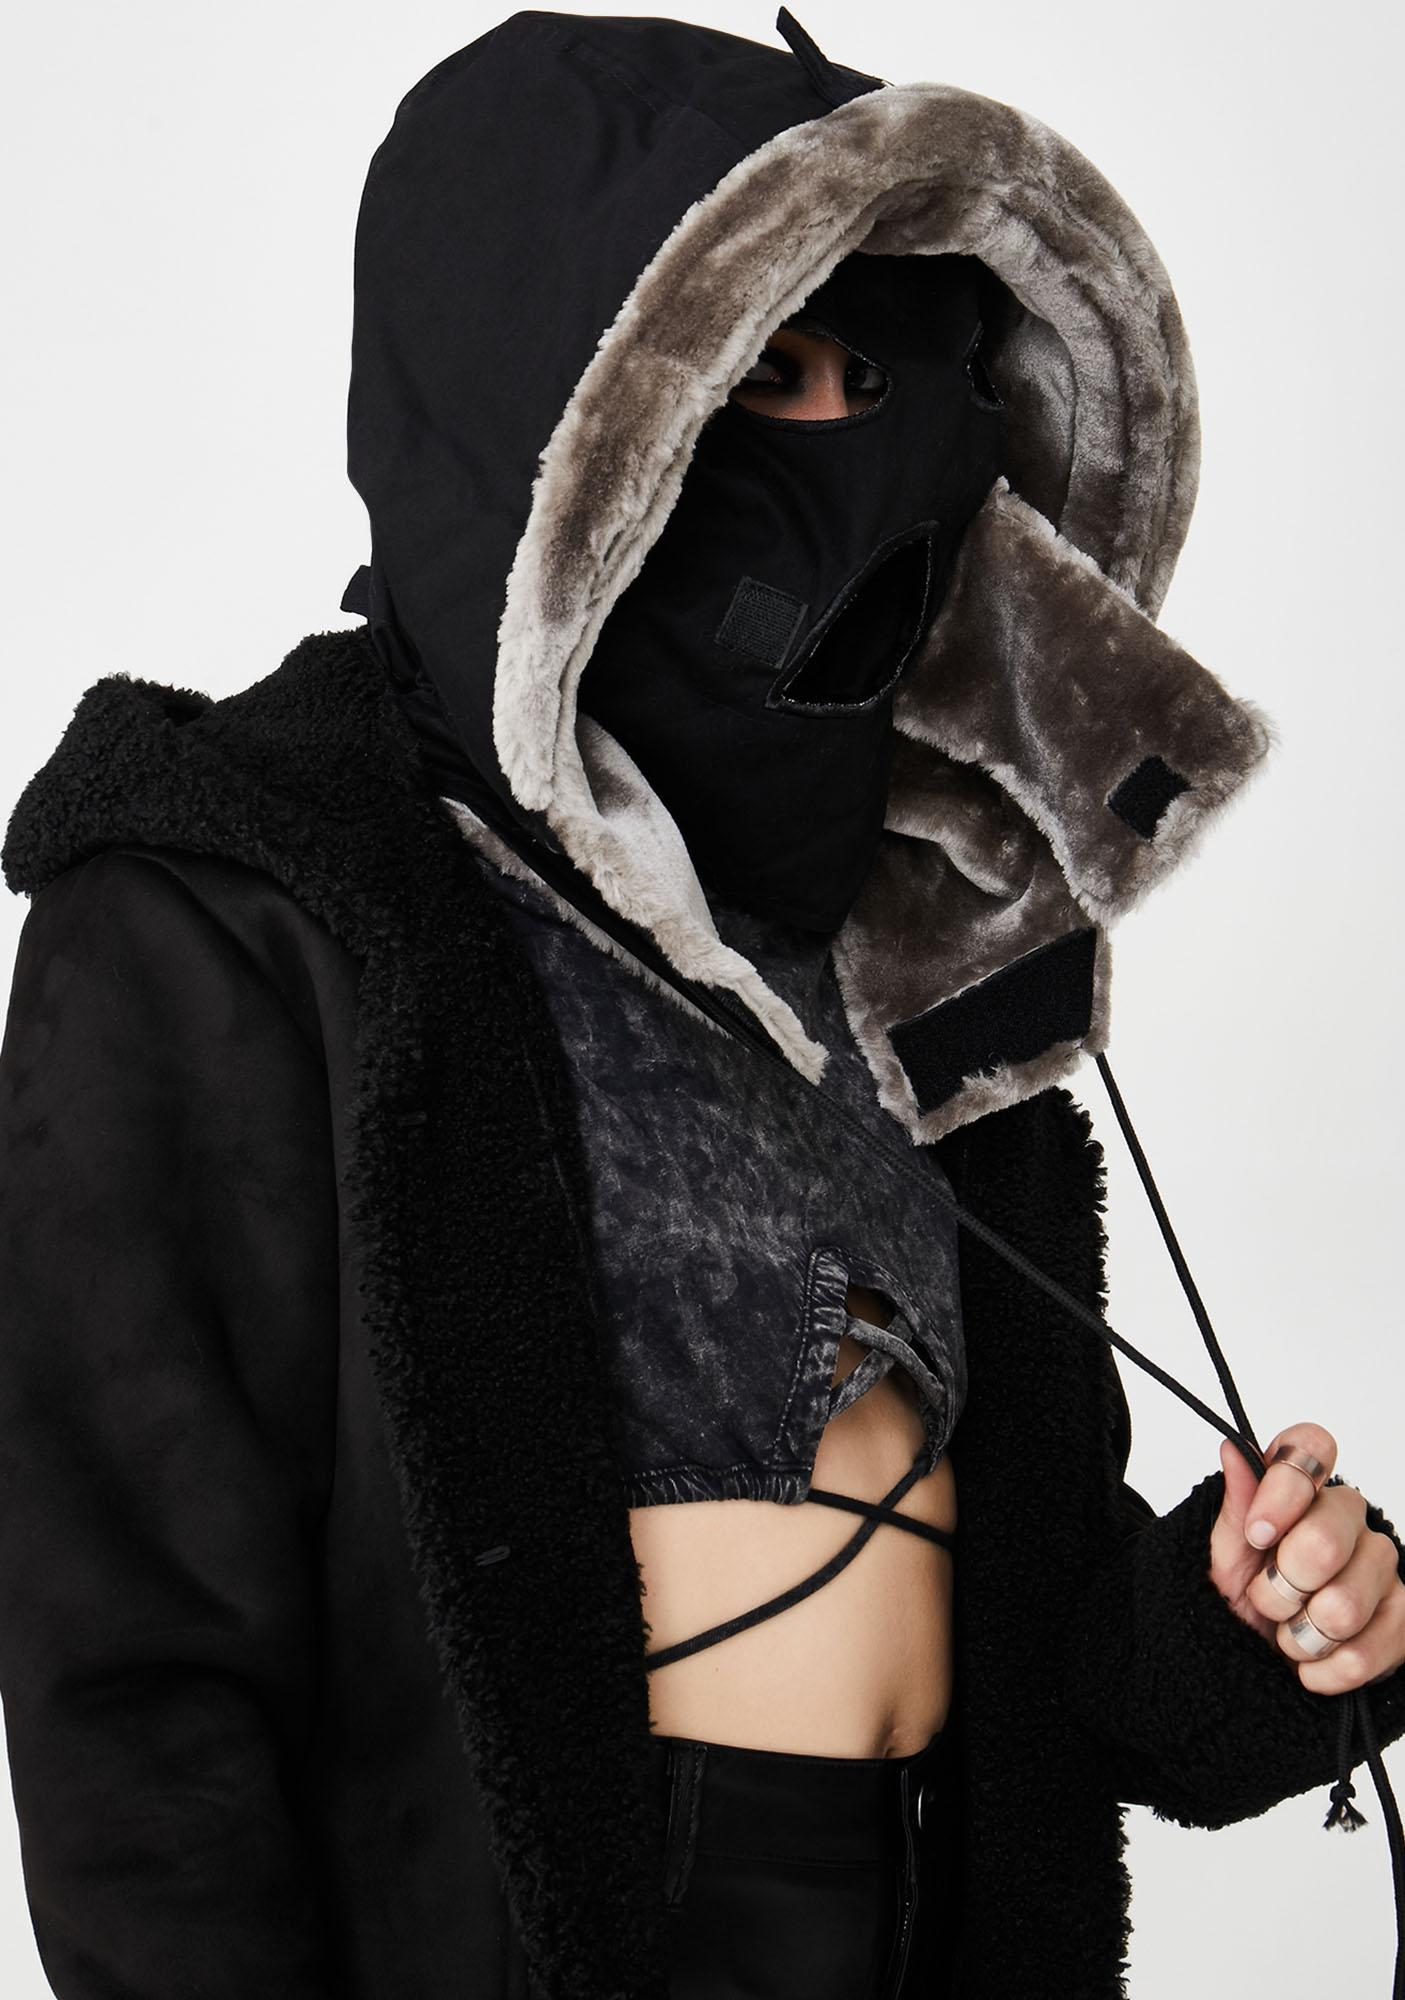 Club Exx Nocturnal Rage Hooded Mask